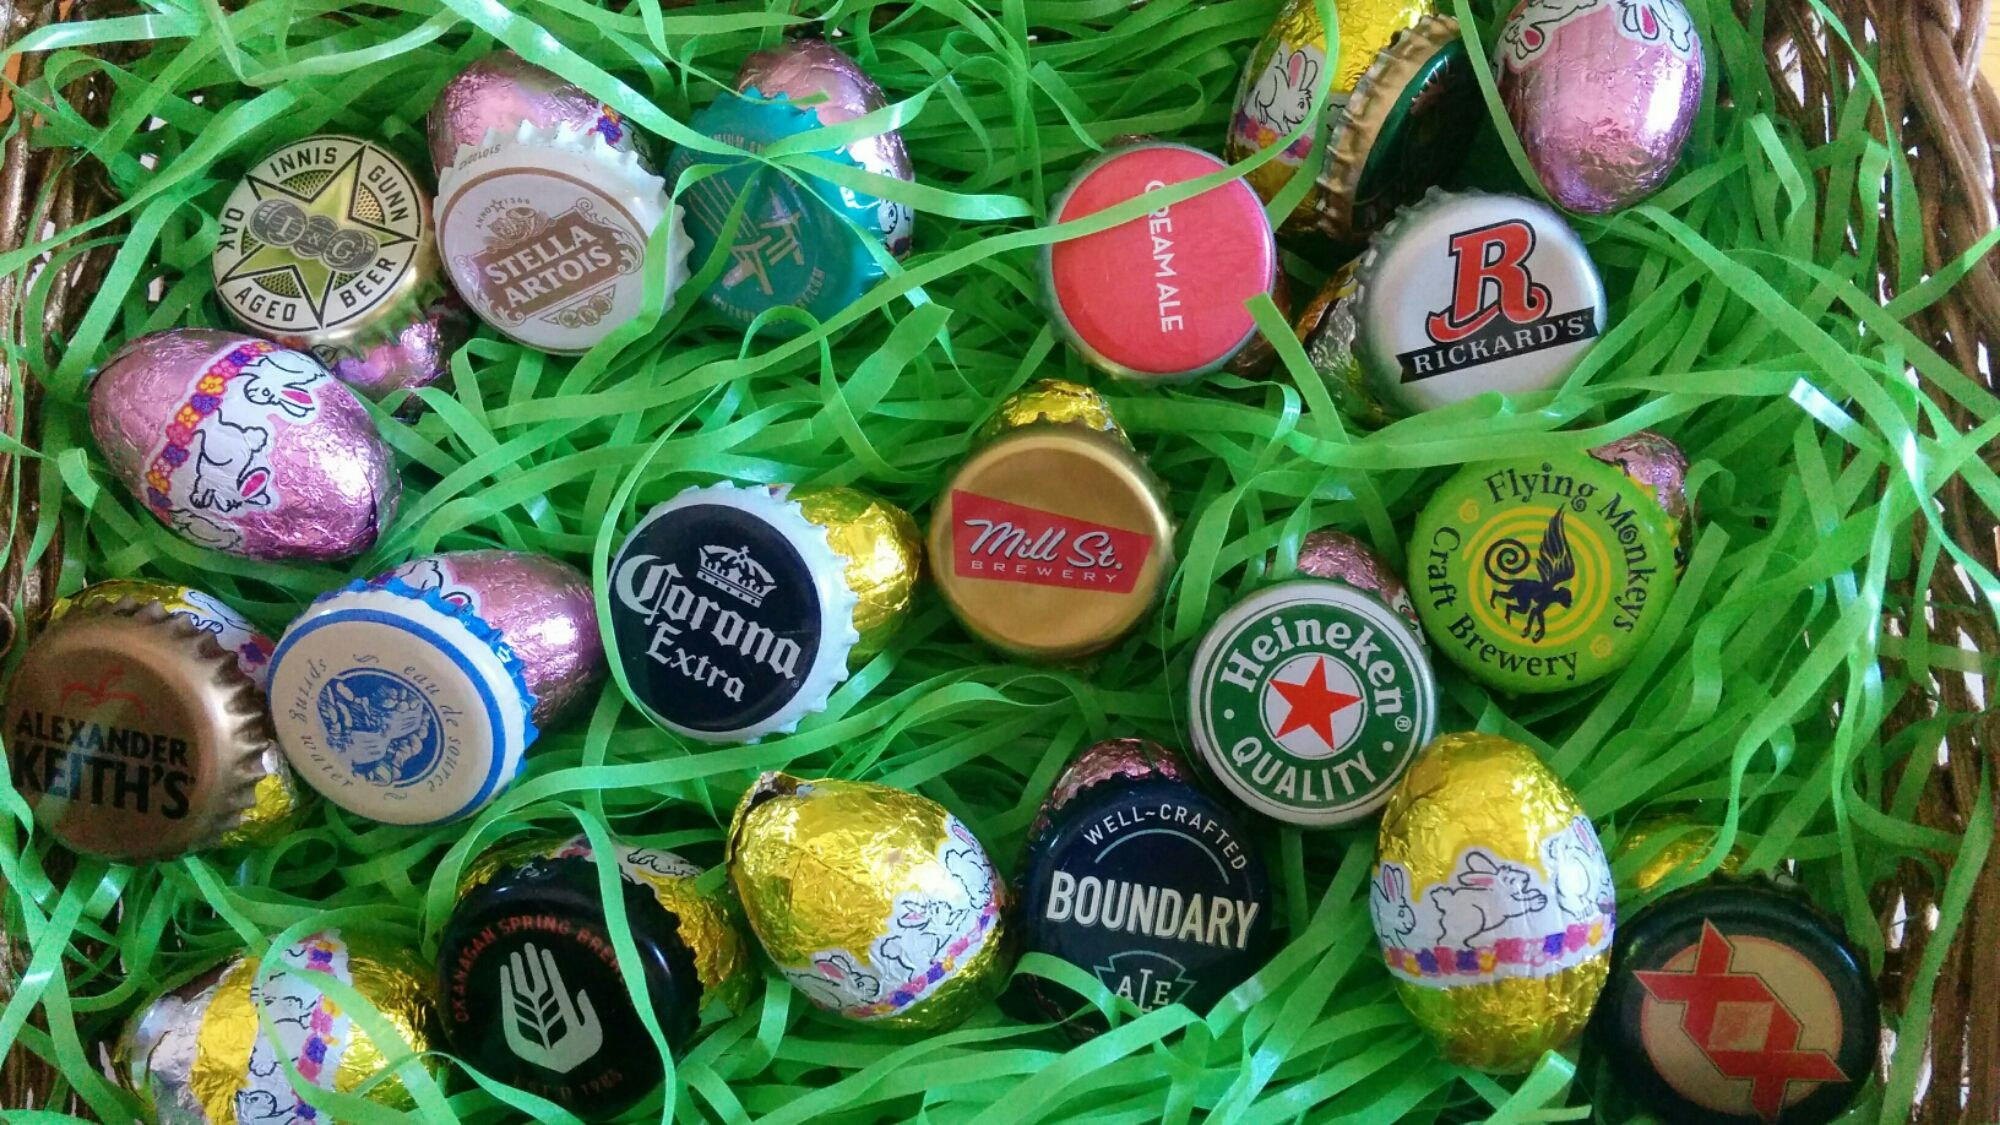 Beerster egg hunt easter egg and peter cottontail beerster egg hunt negle Image collections